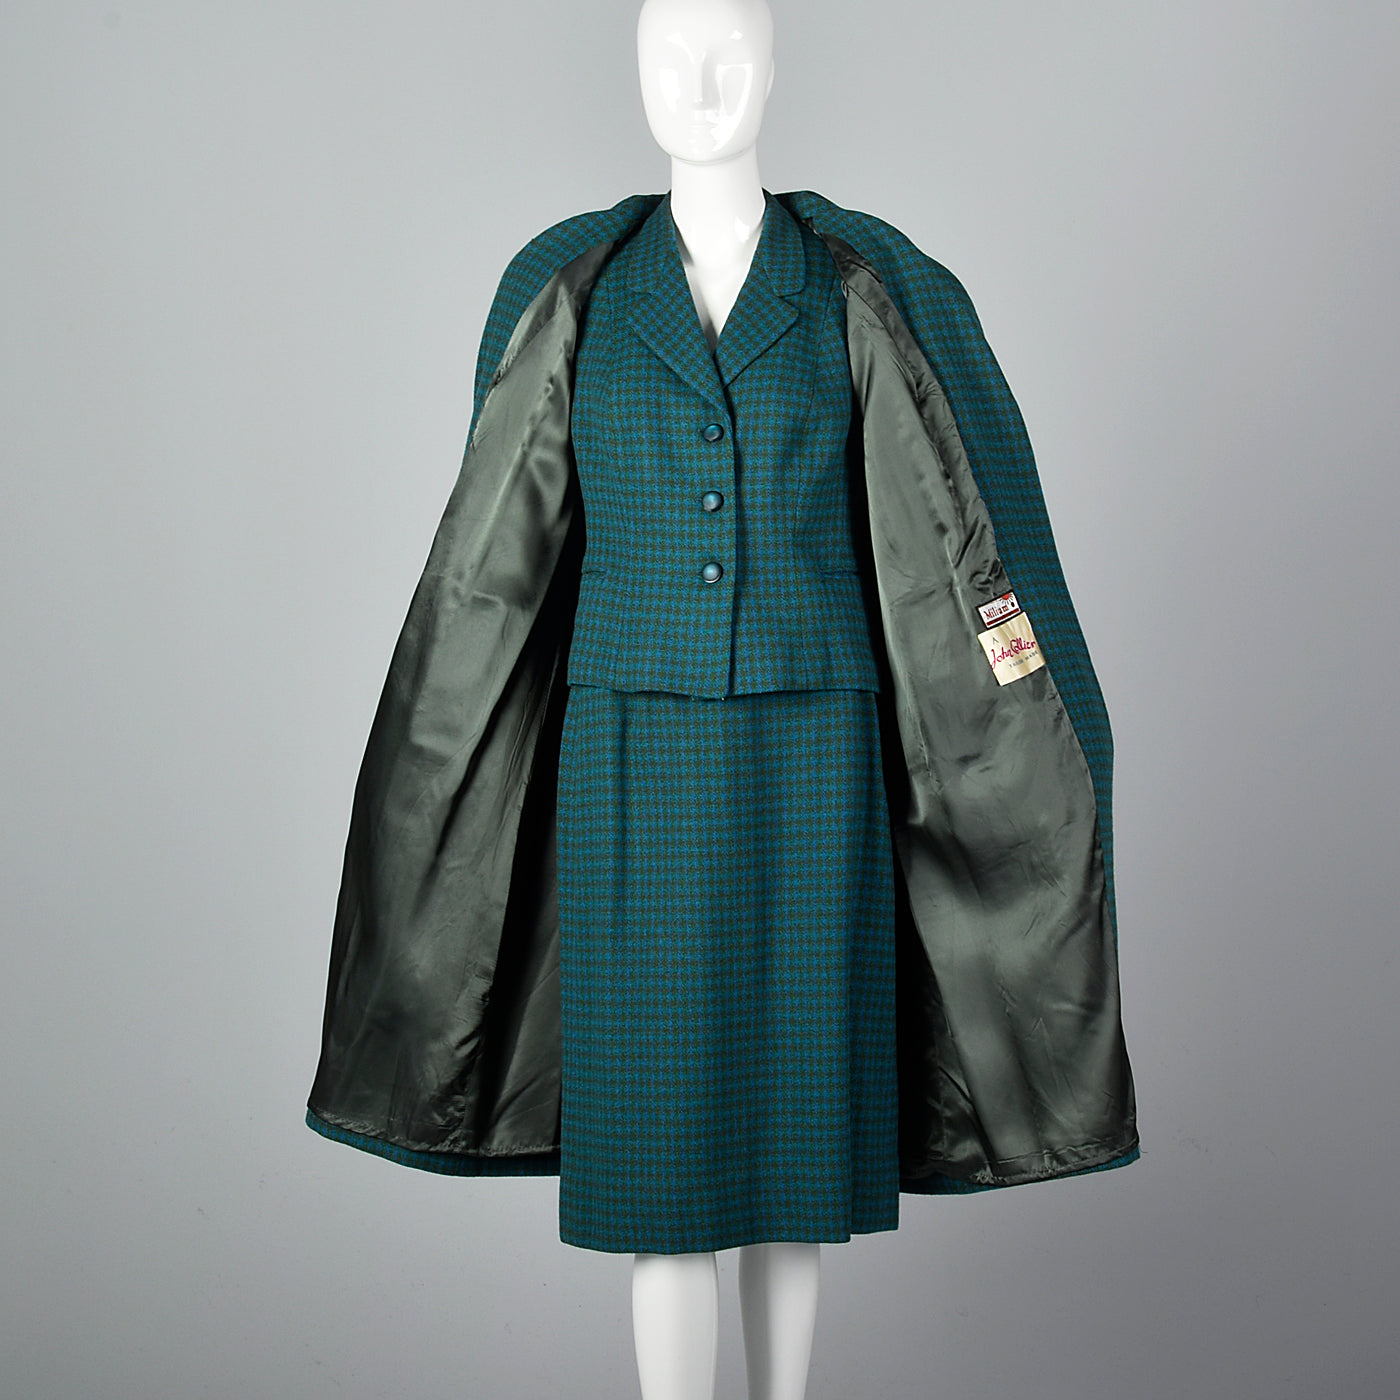 1960s Three Piece Skirt Suit with Matching Winter Coat in Green & Blue Wool